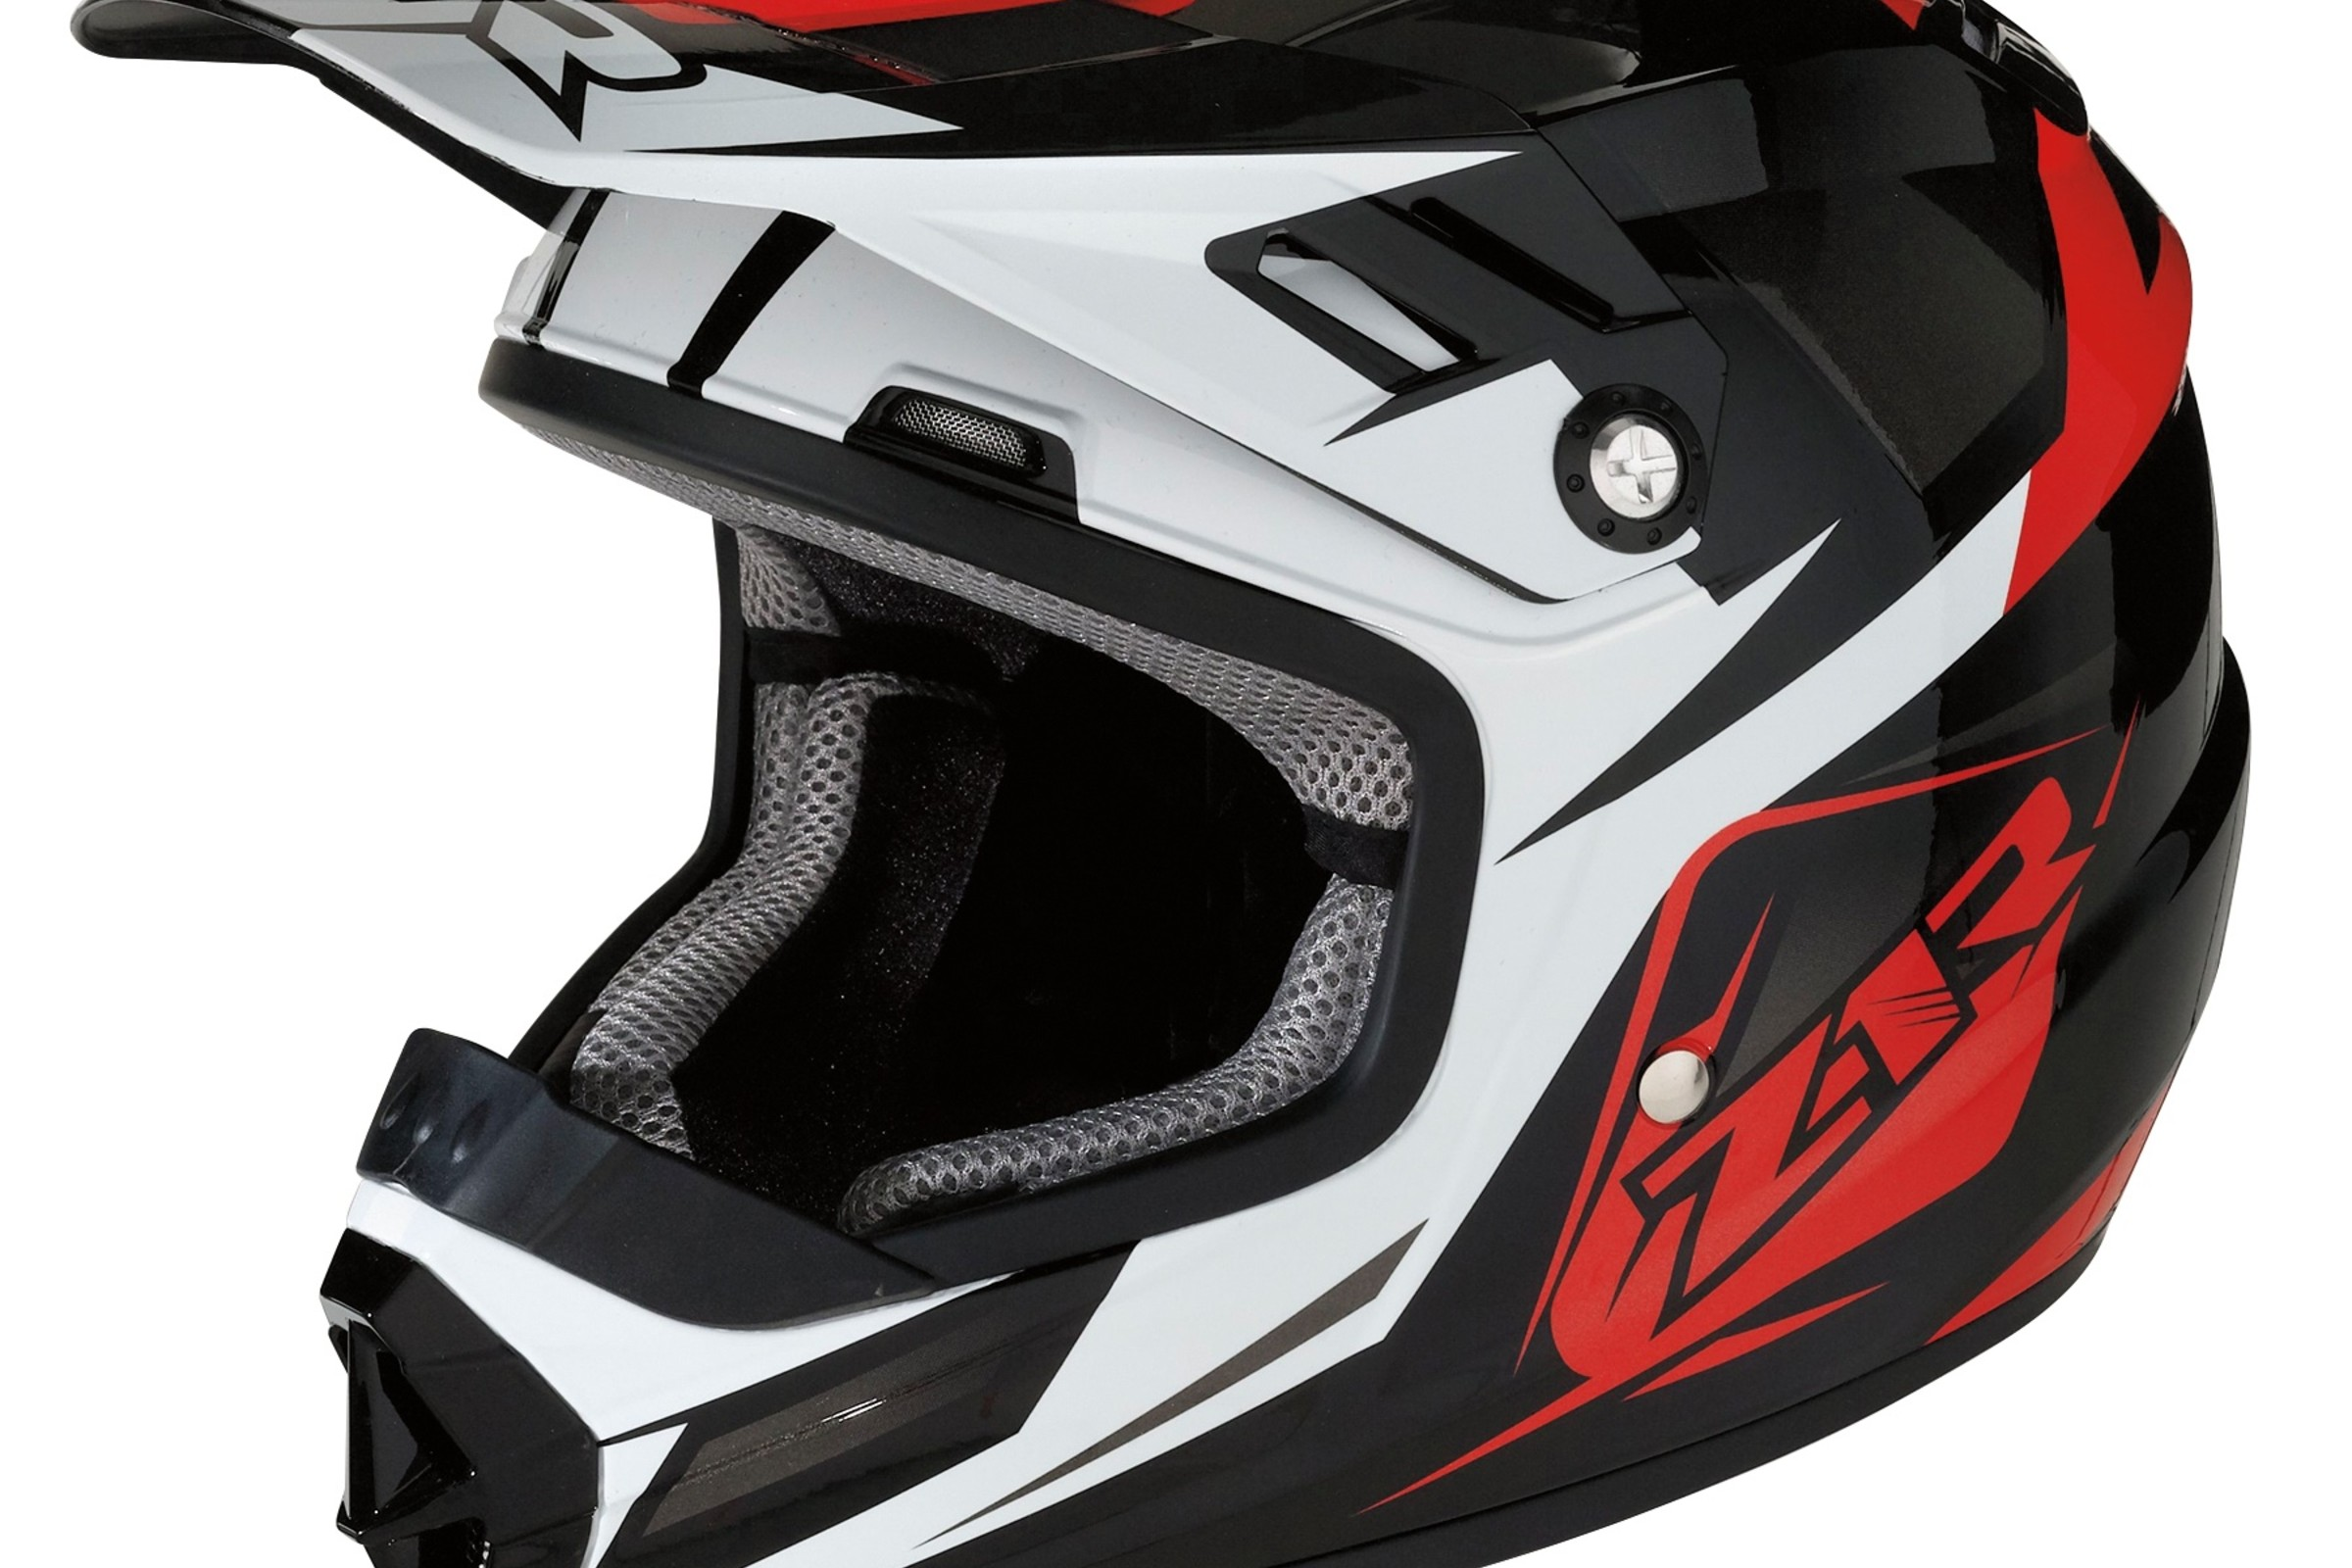 Z1R Introduces Brand-New Rise Ascend Youth Helmet